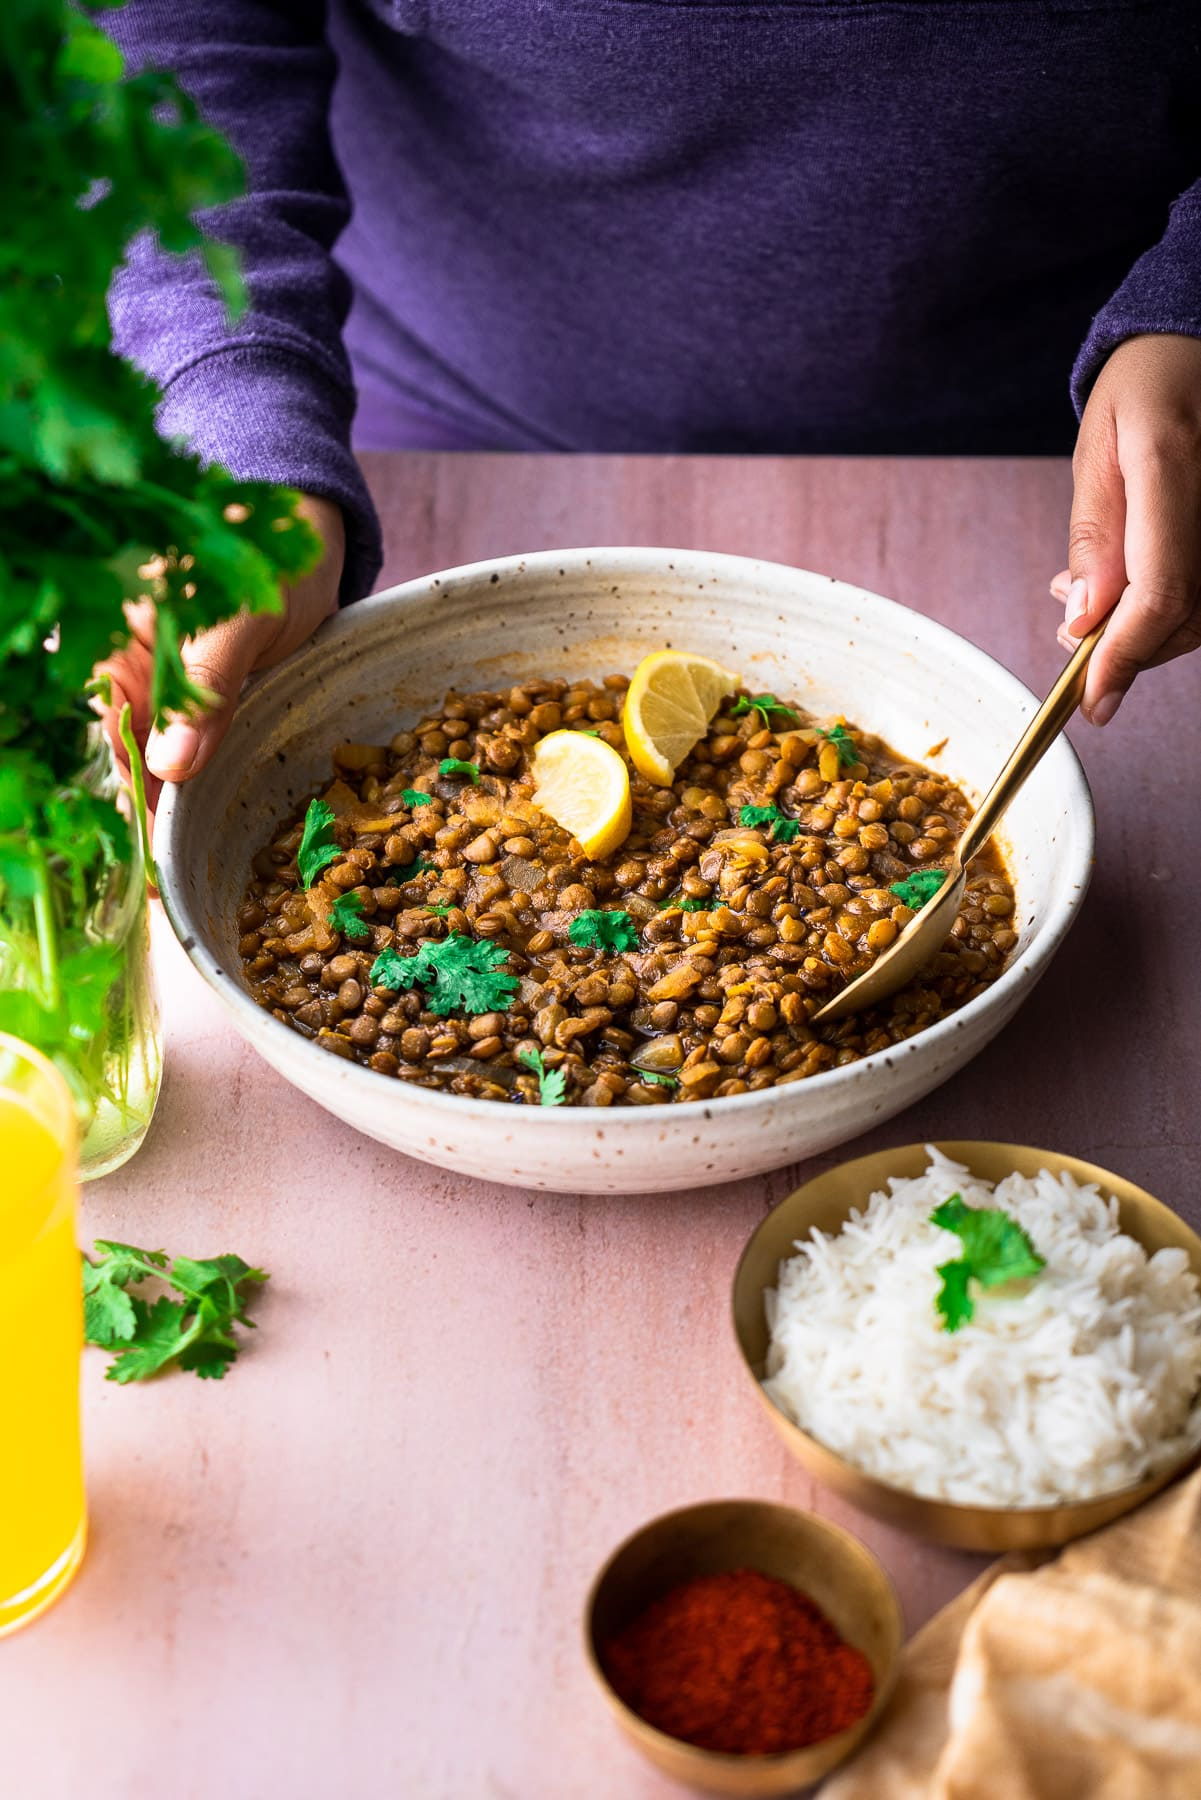 serving sabut masoor dal in a serving bowl with a person spooning it with rice, chili powder, cilantro, and juice alongside